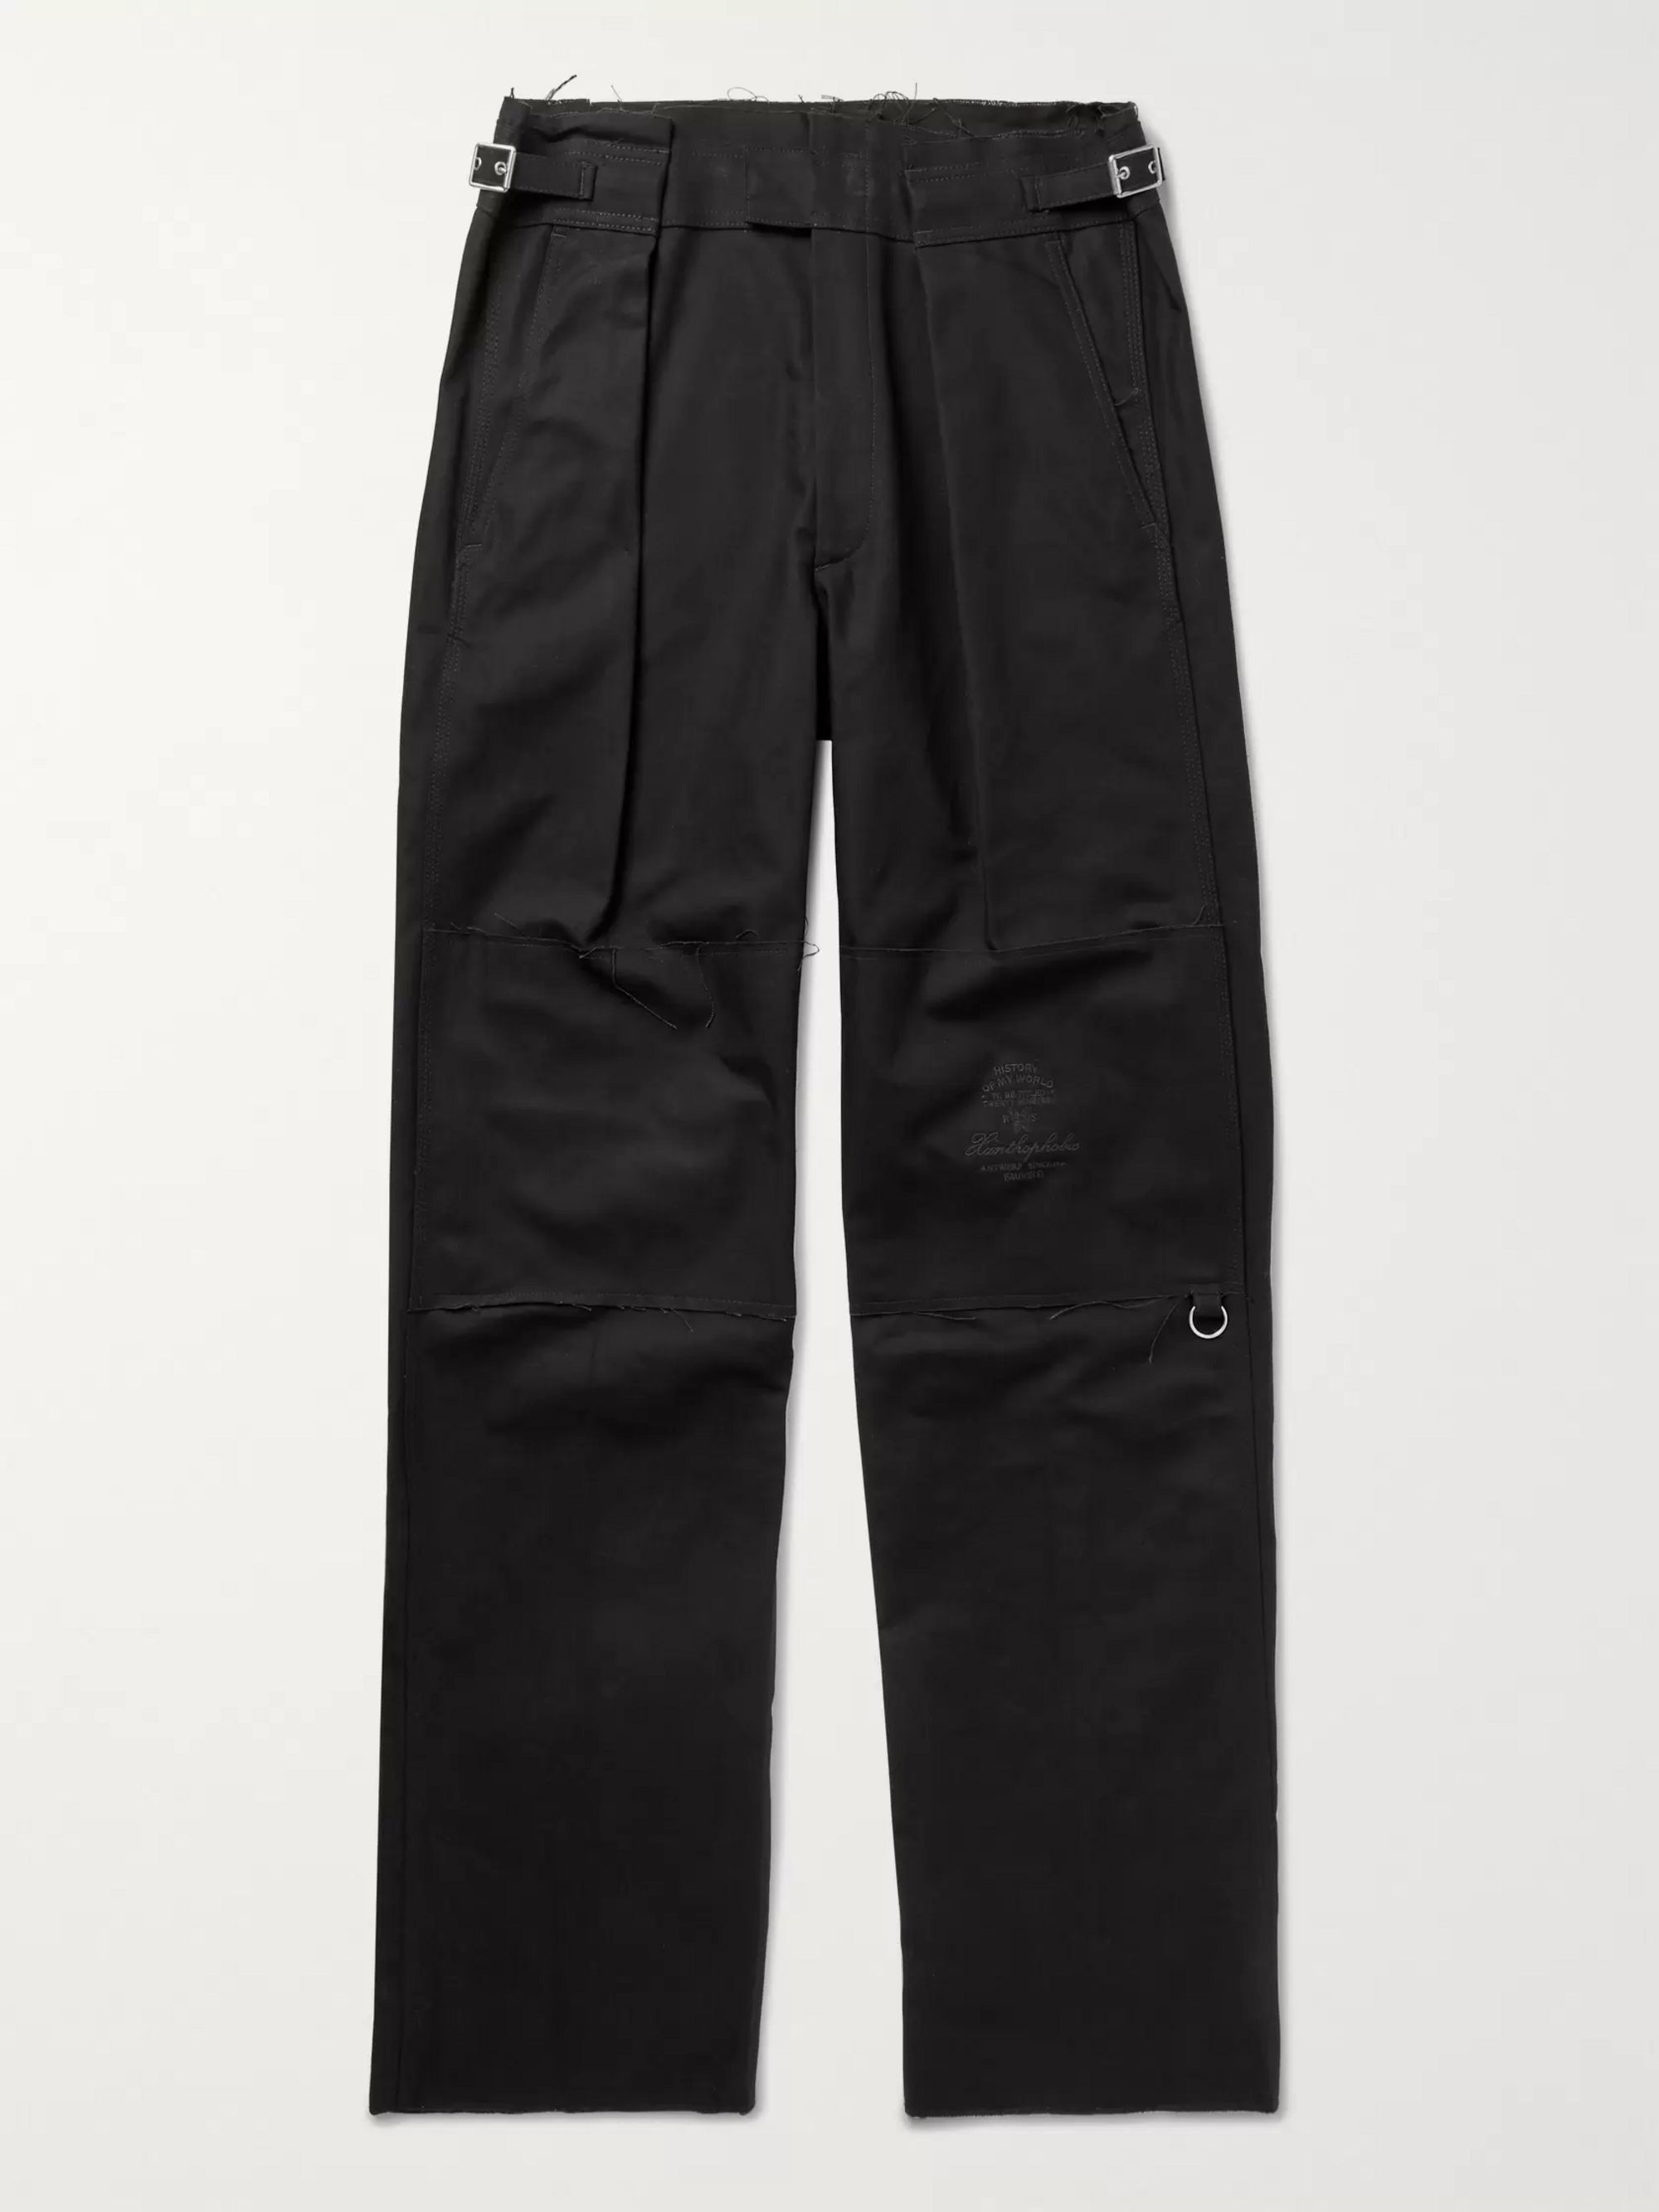 Raf Simons Black Bootcut Embroidered Cotton-Twill Trousers